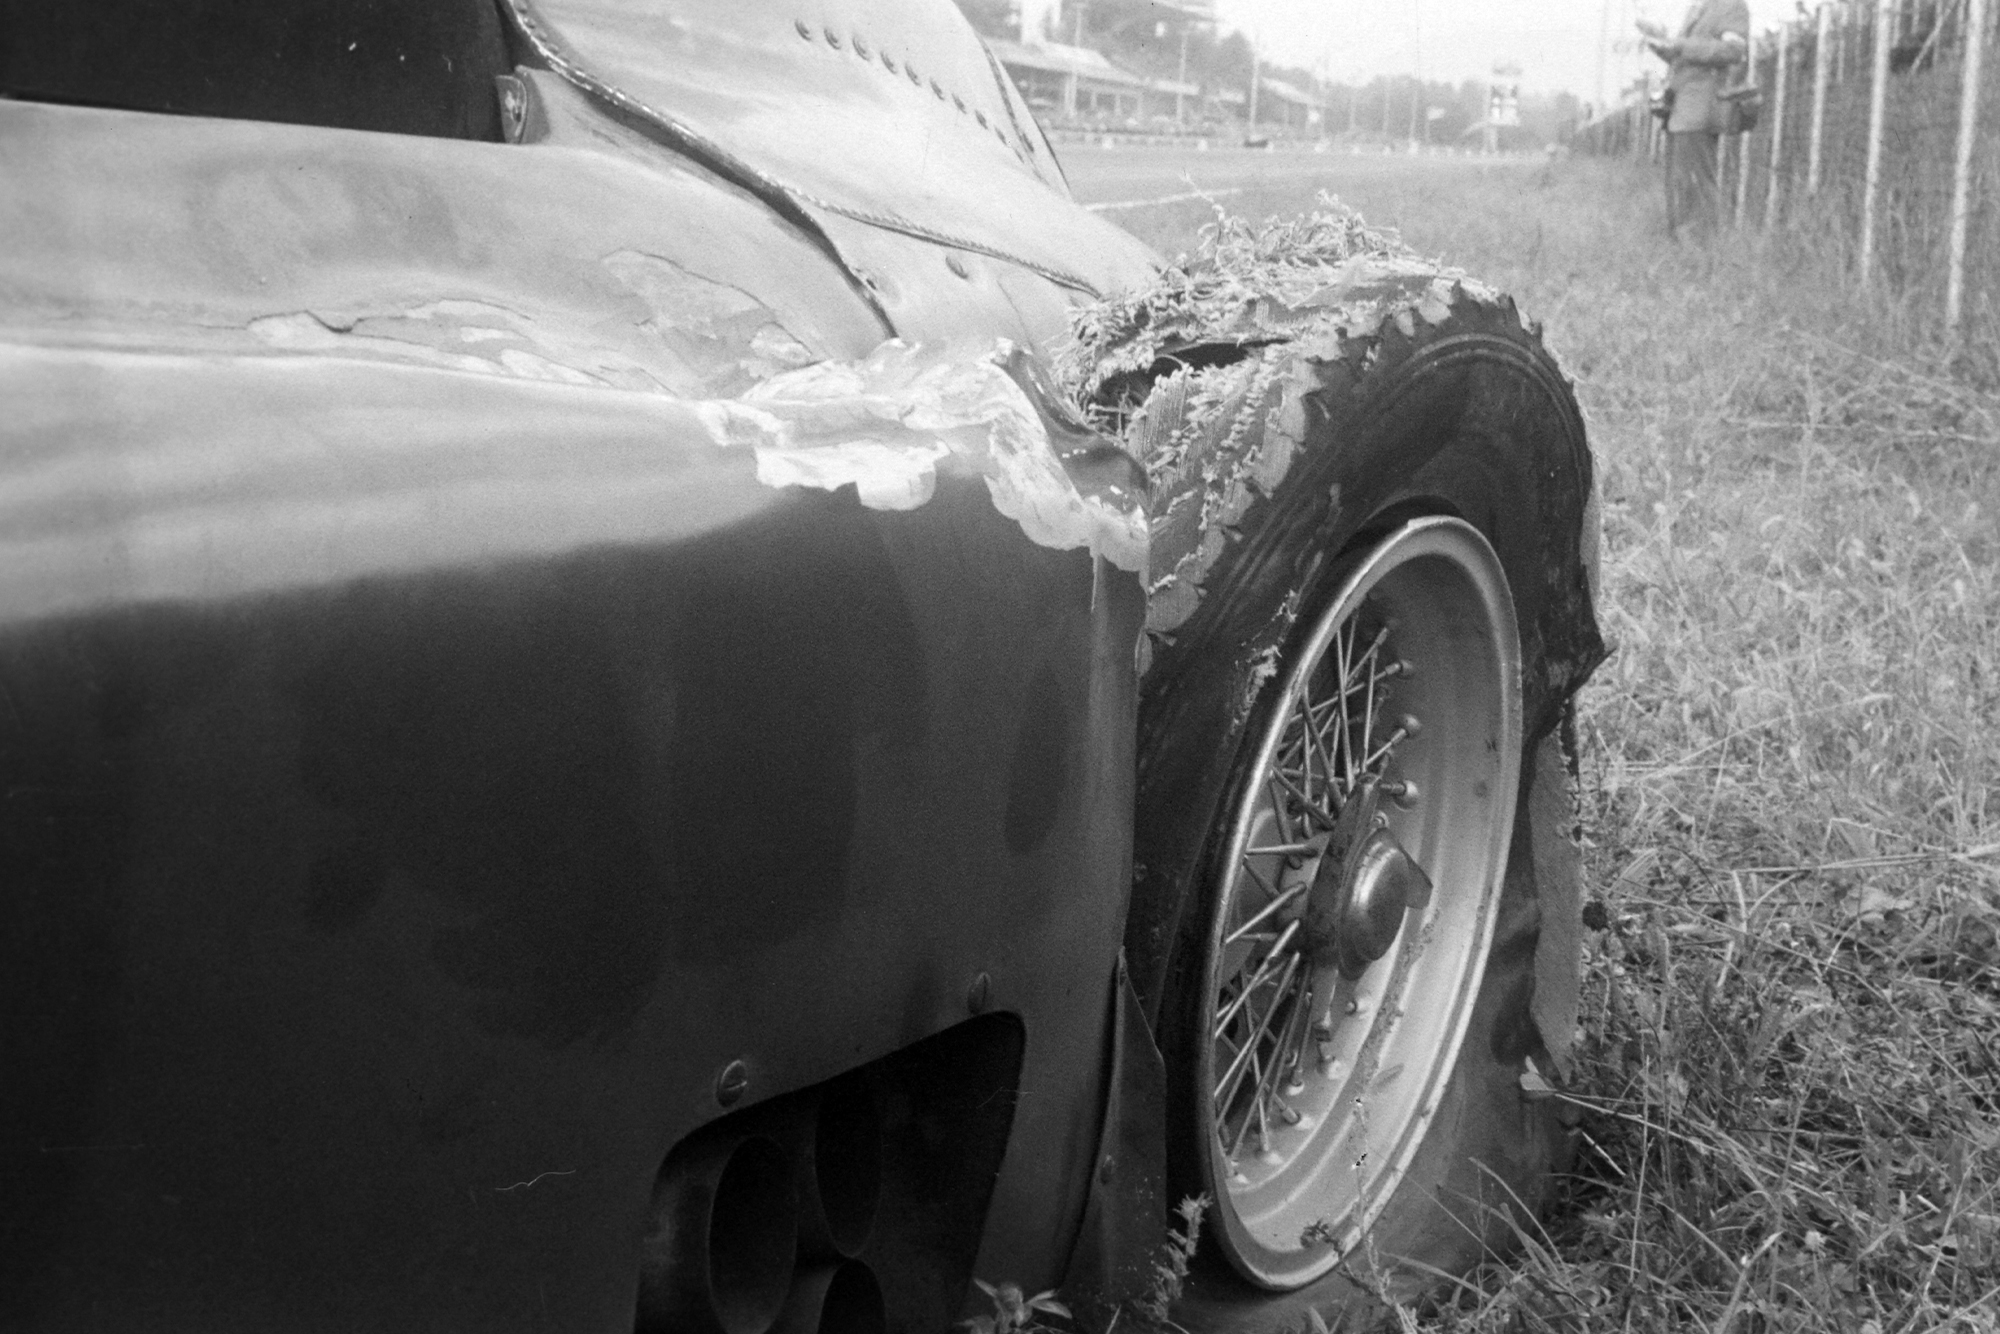 Castellotti's destroyed tyre during the 1956 Italian Grand Prix